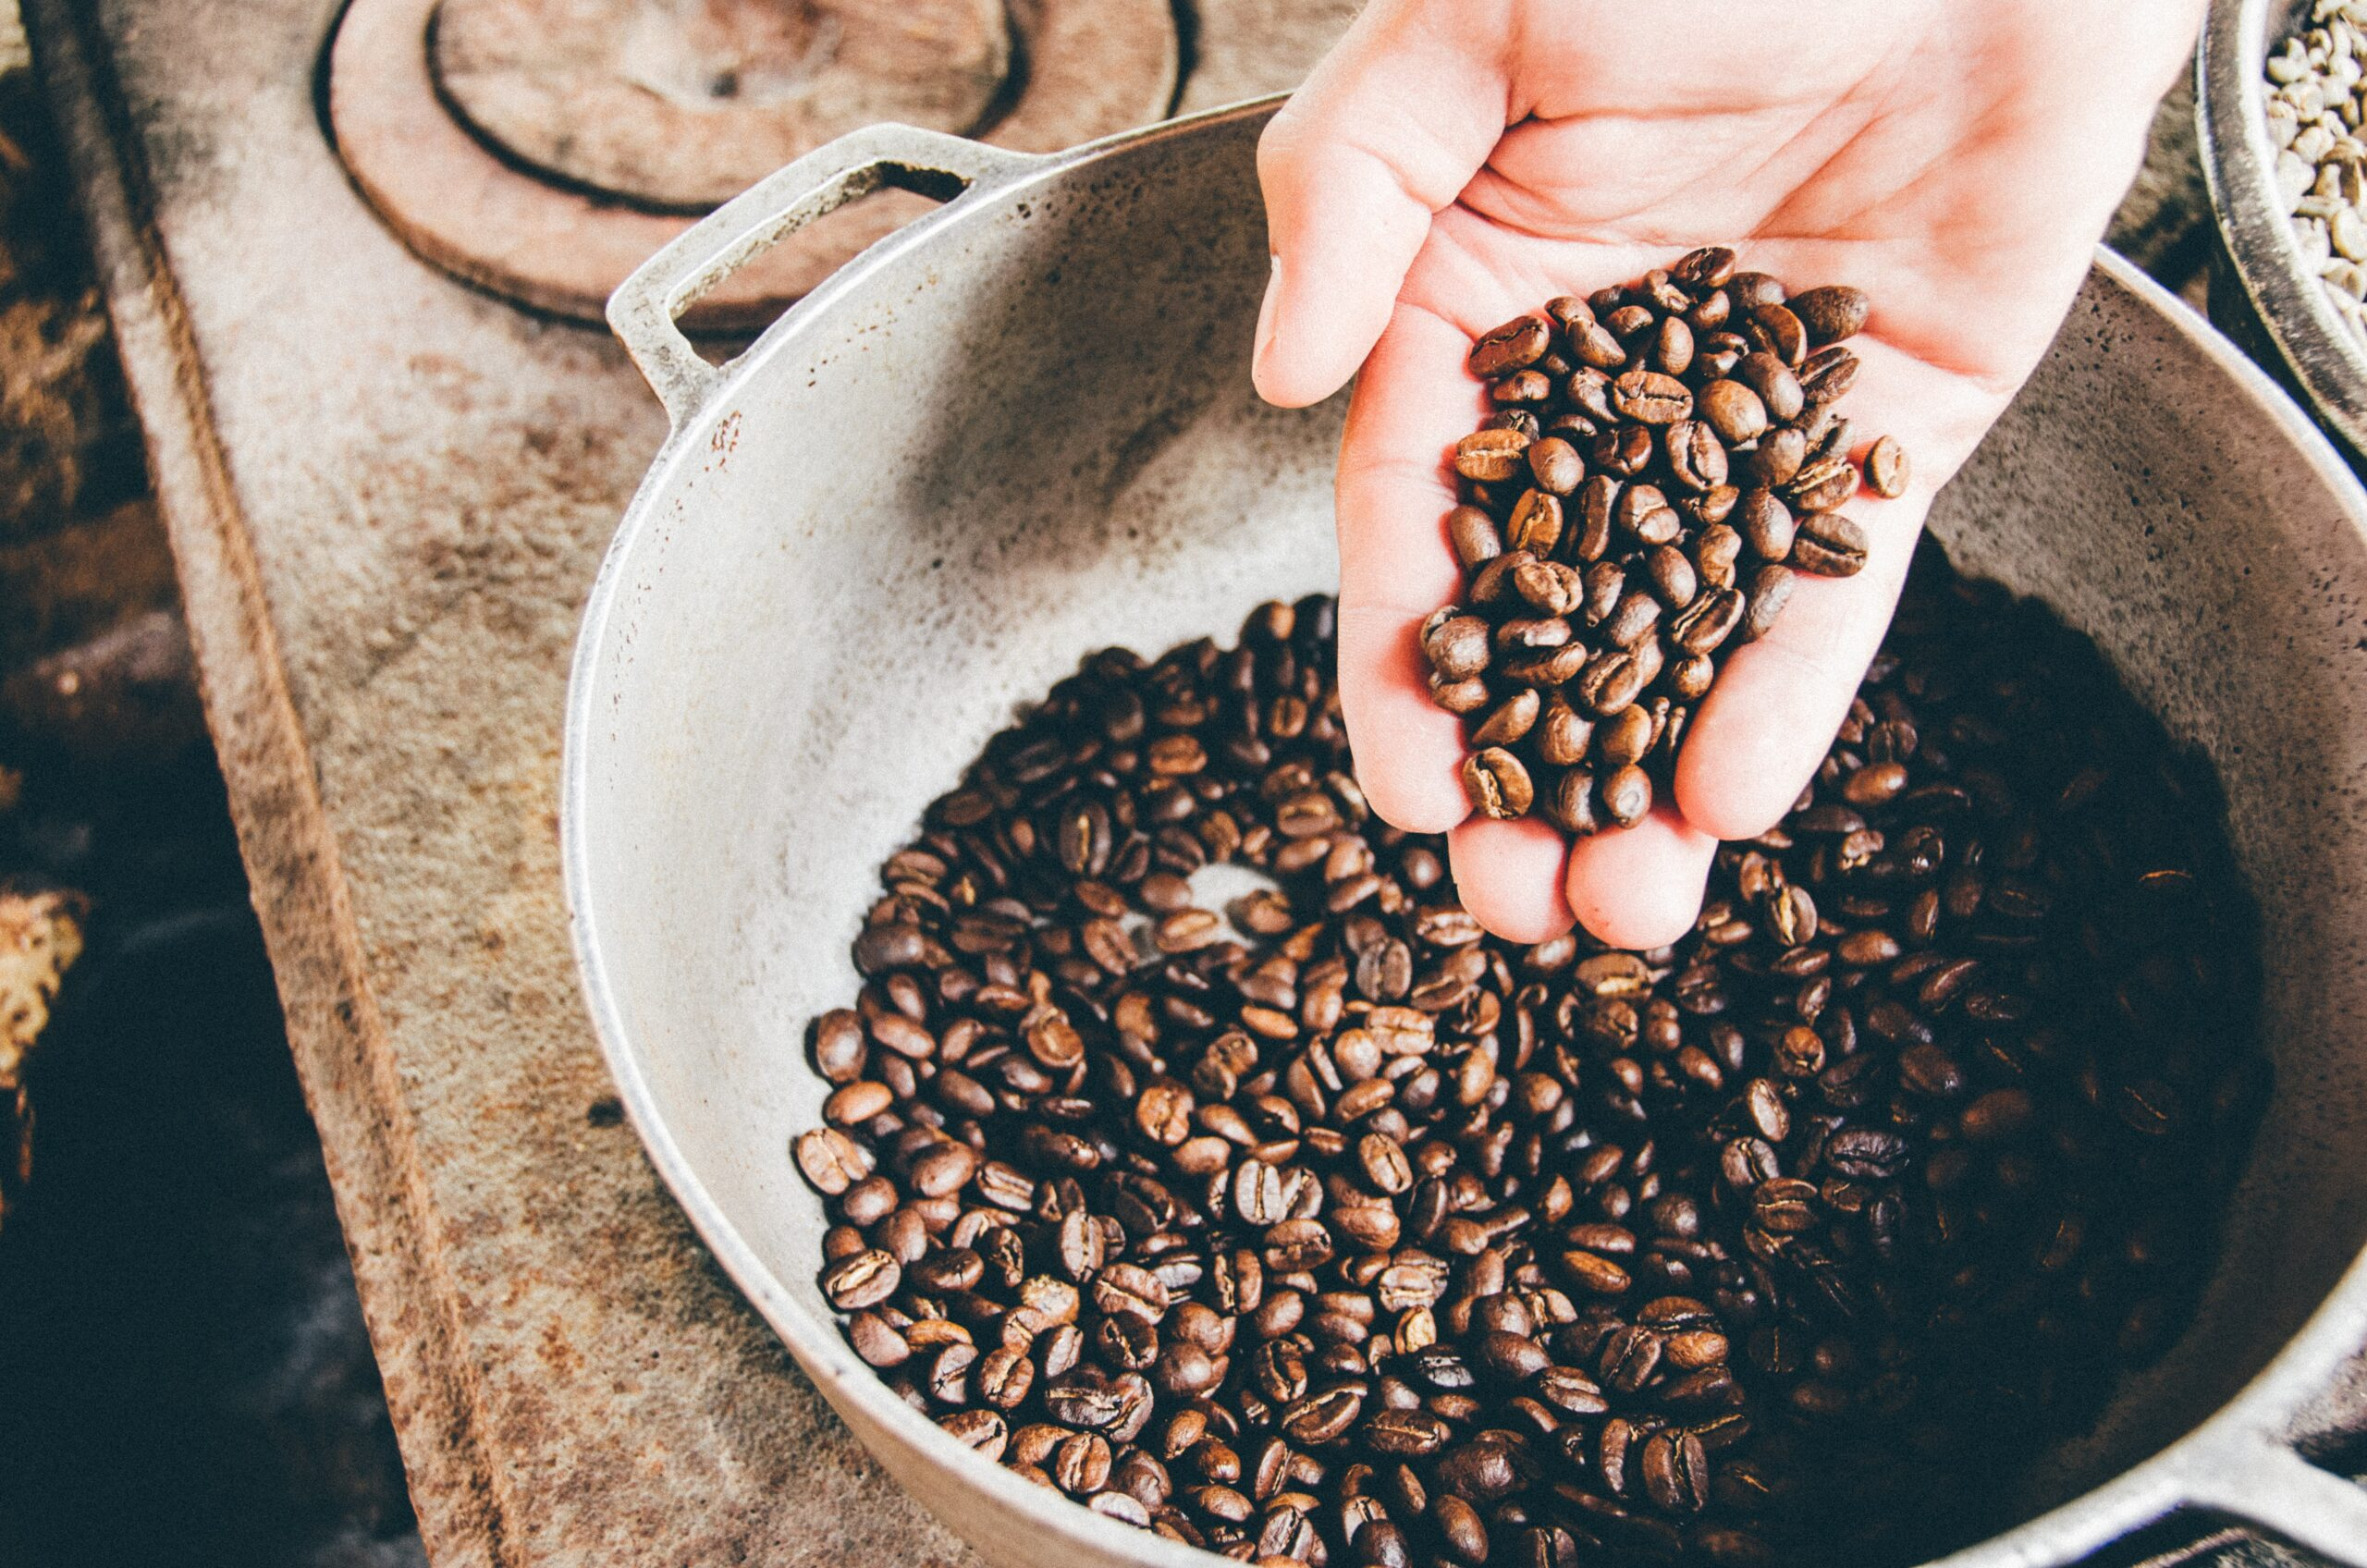 a person scooping coffee beans with her hands